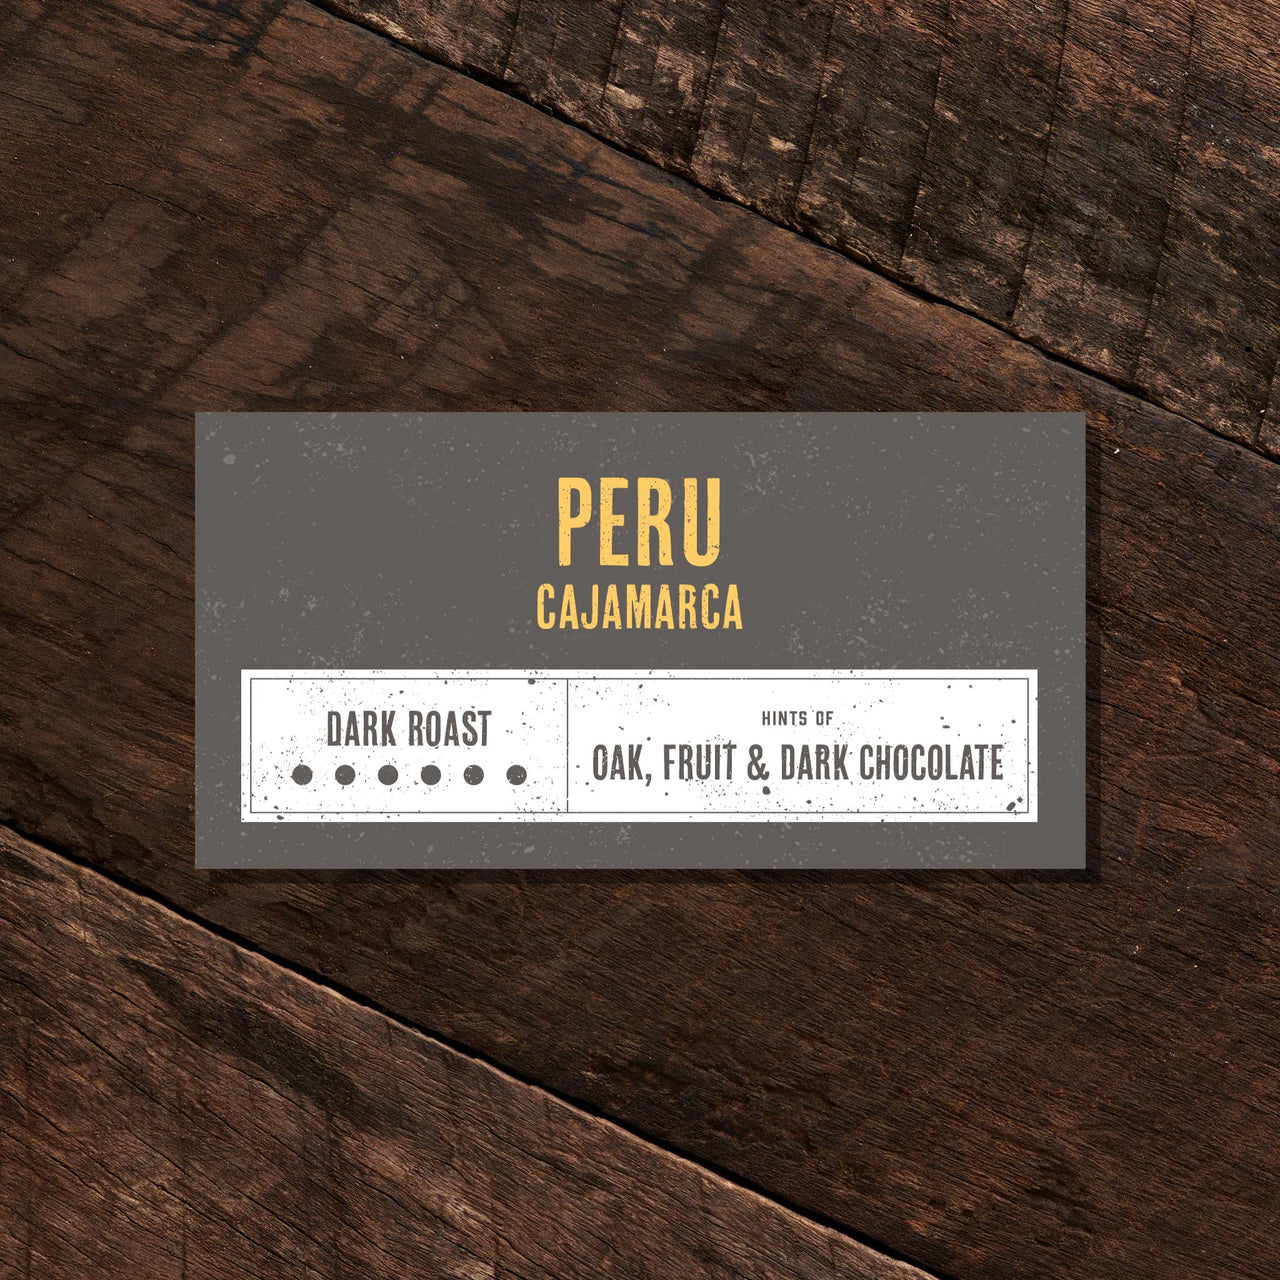 Peru Cajamarca - Dark Roast